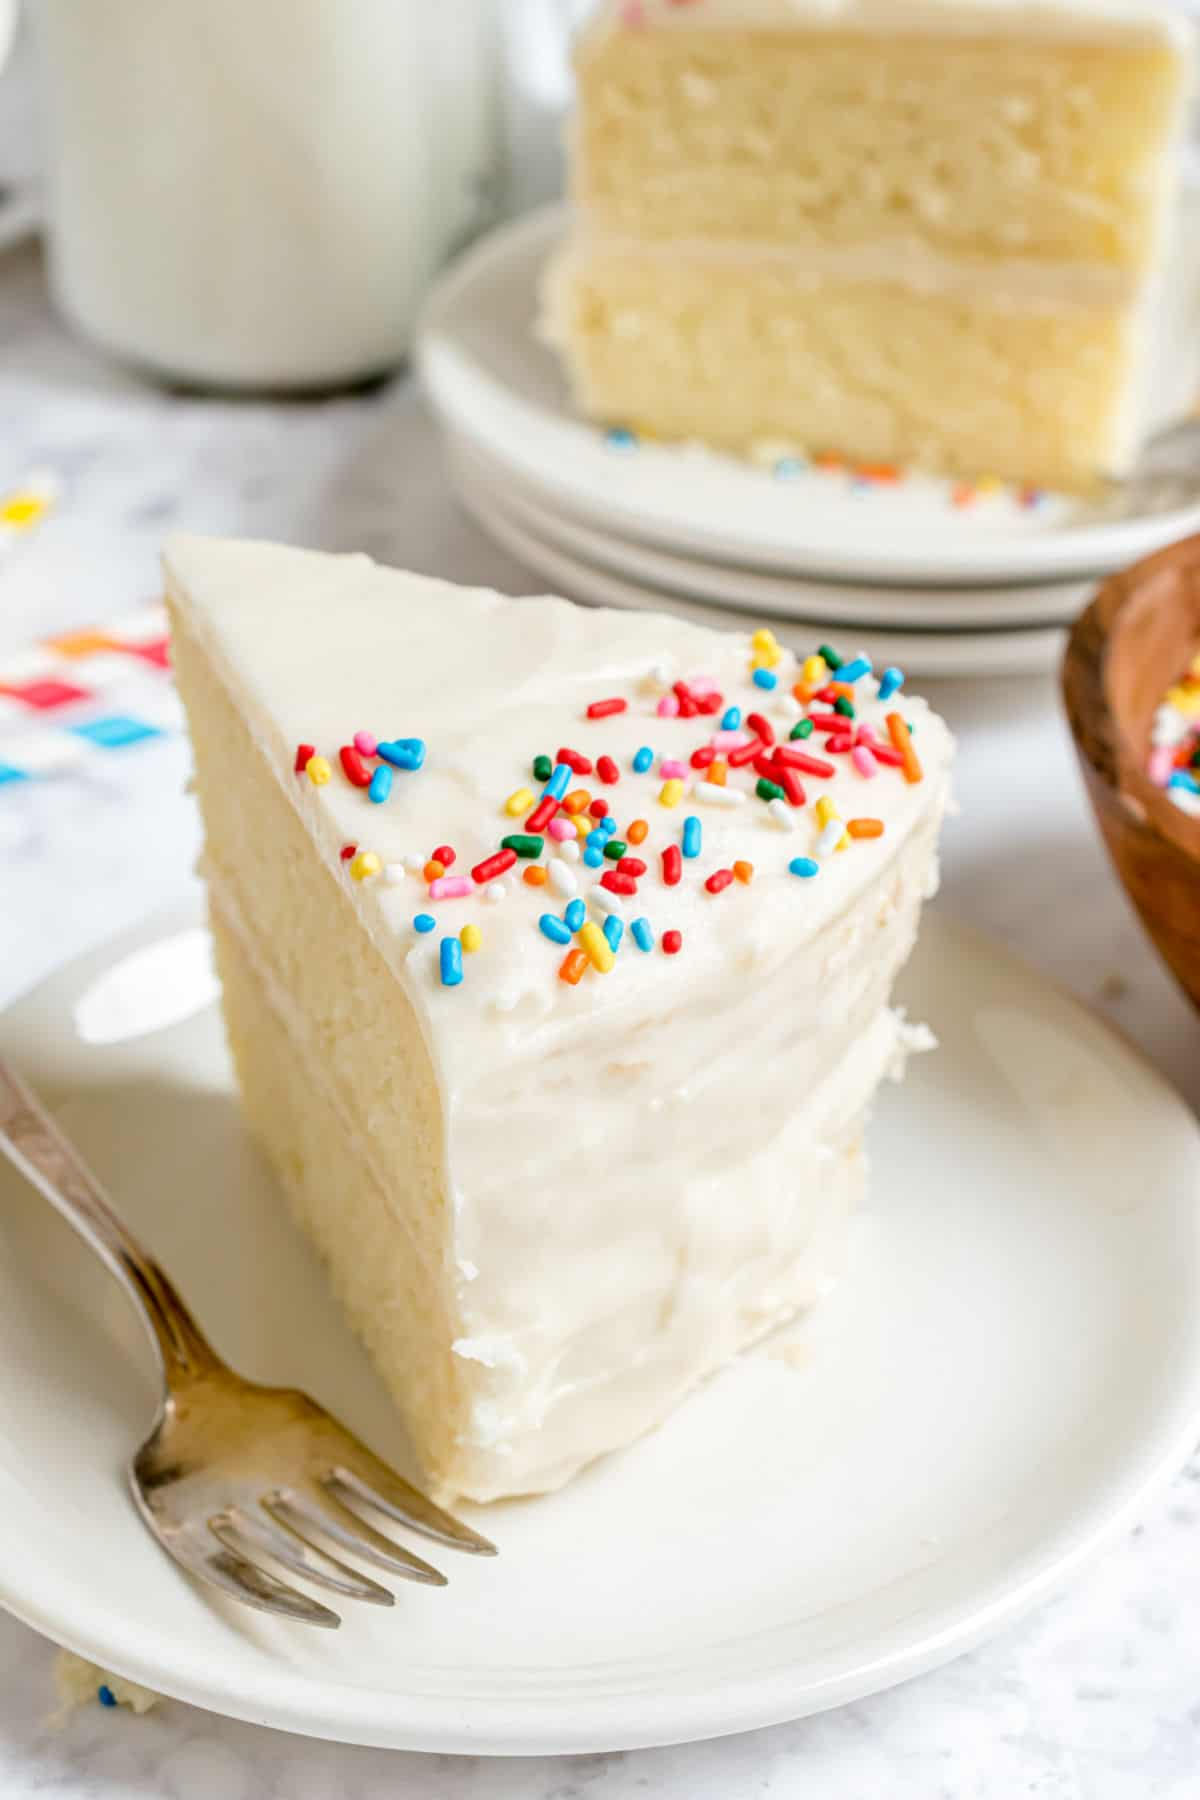 Vanilla sour cream frosting on a slice of cake with sprinkles.